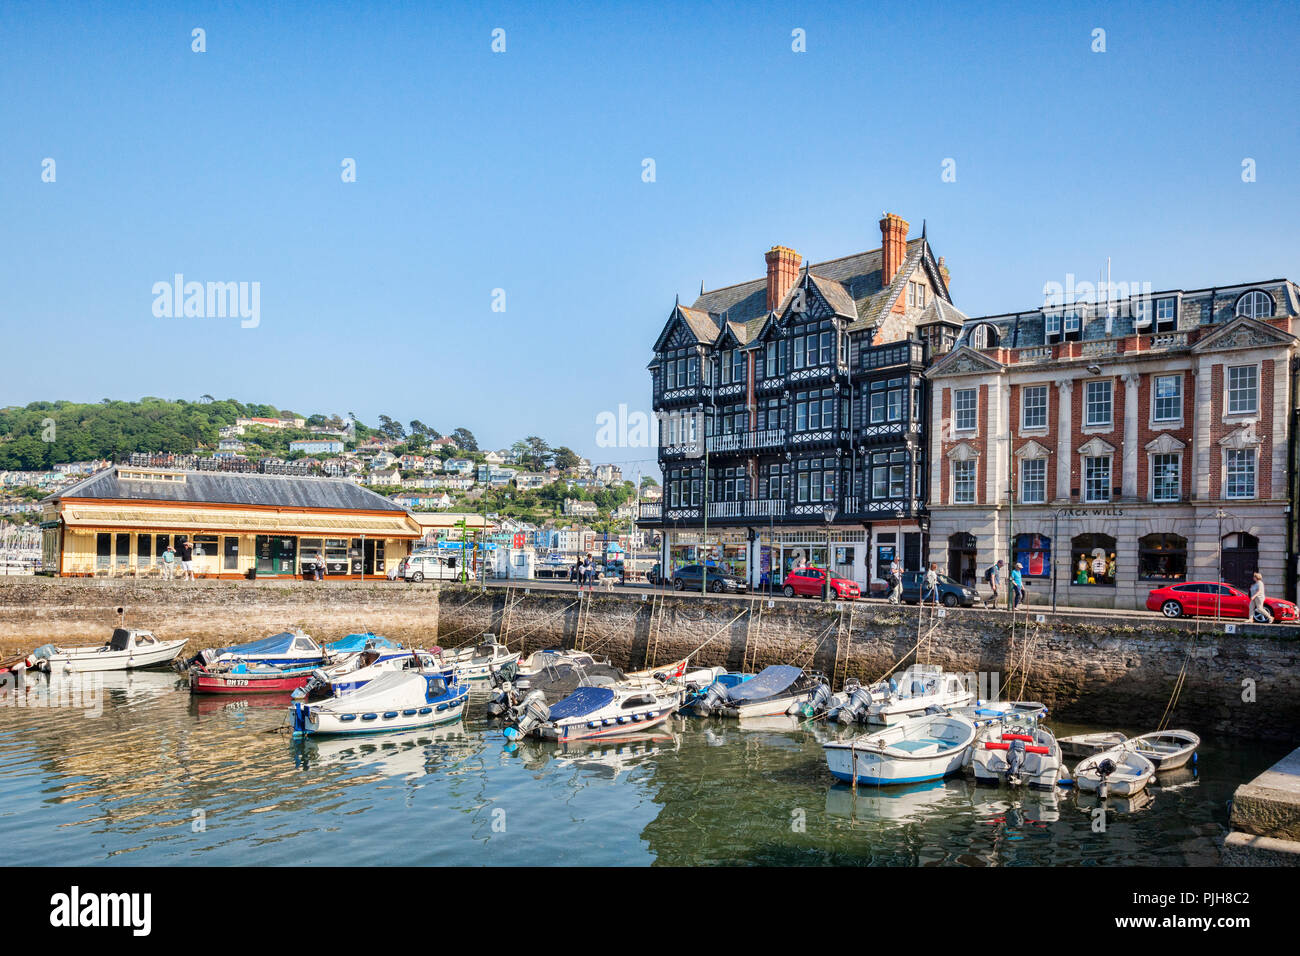 23 May 2018: Dartmouth, Devon, UK - York House and the Boat Float, or inner harbour. - Stock Image